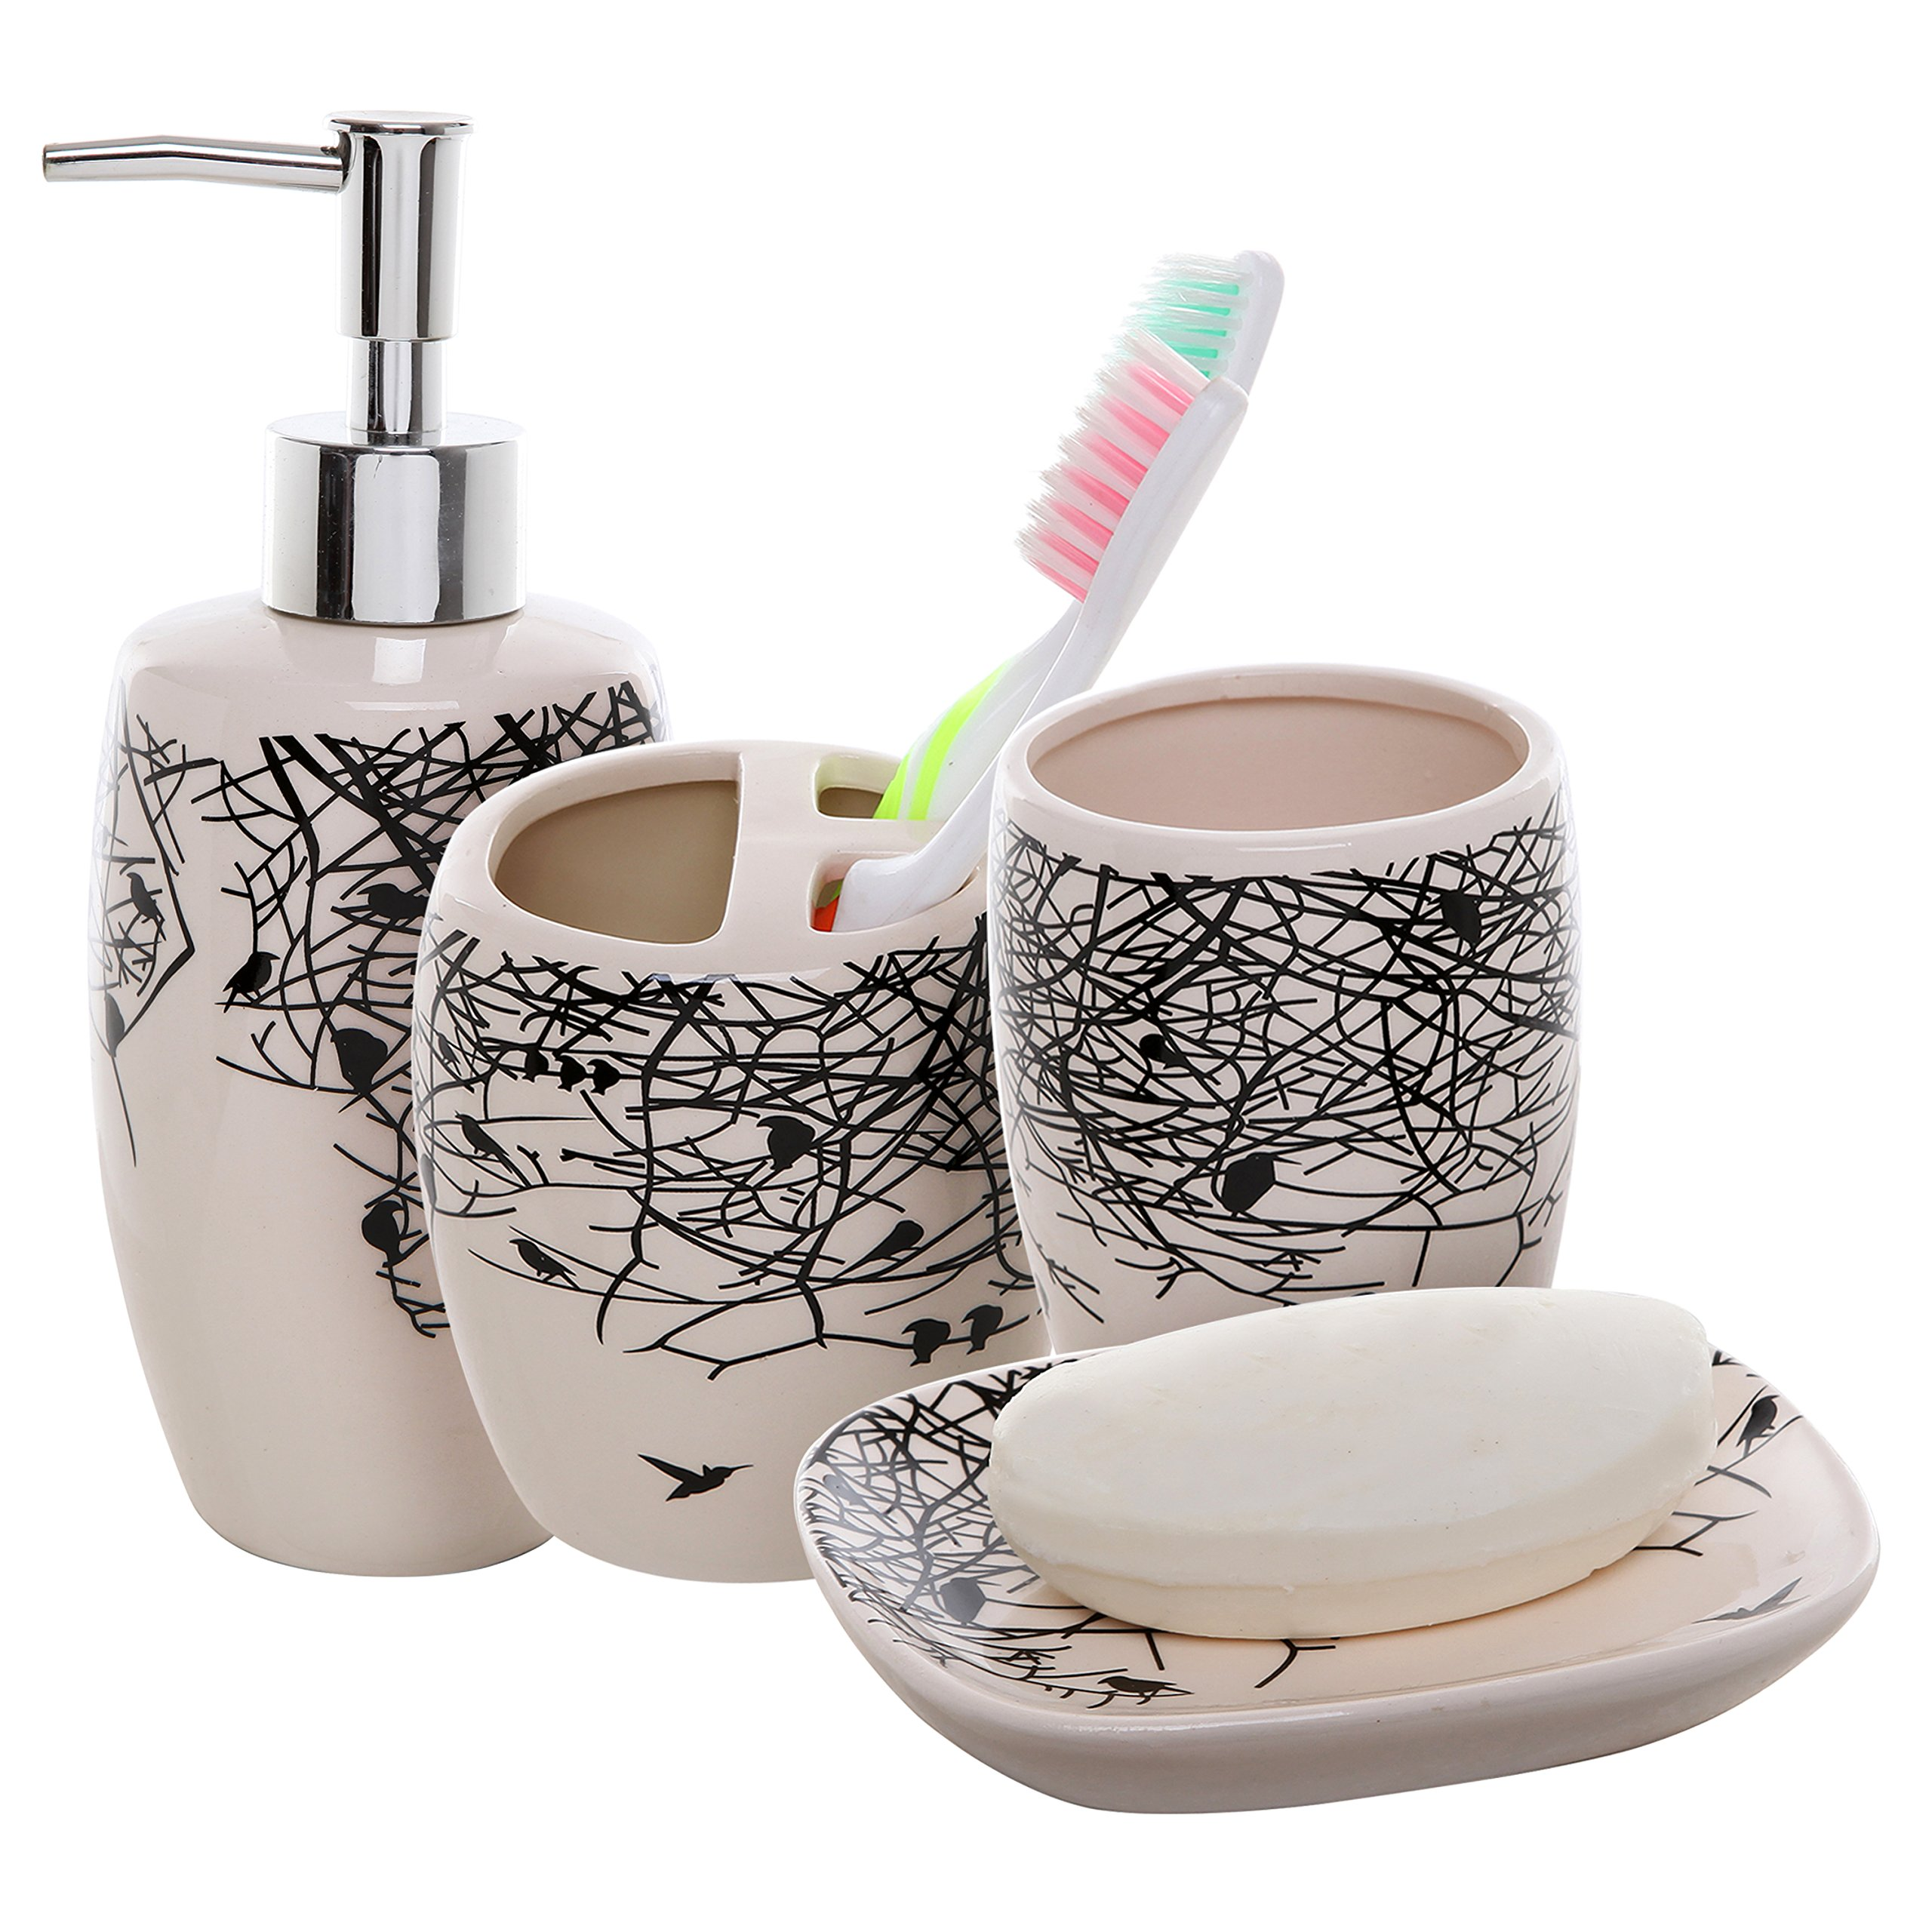 4 piece beige ceramic bathroom accessories set toothbrush holder lotion dis ebay - Bathroom soap dish sets ...